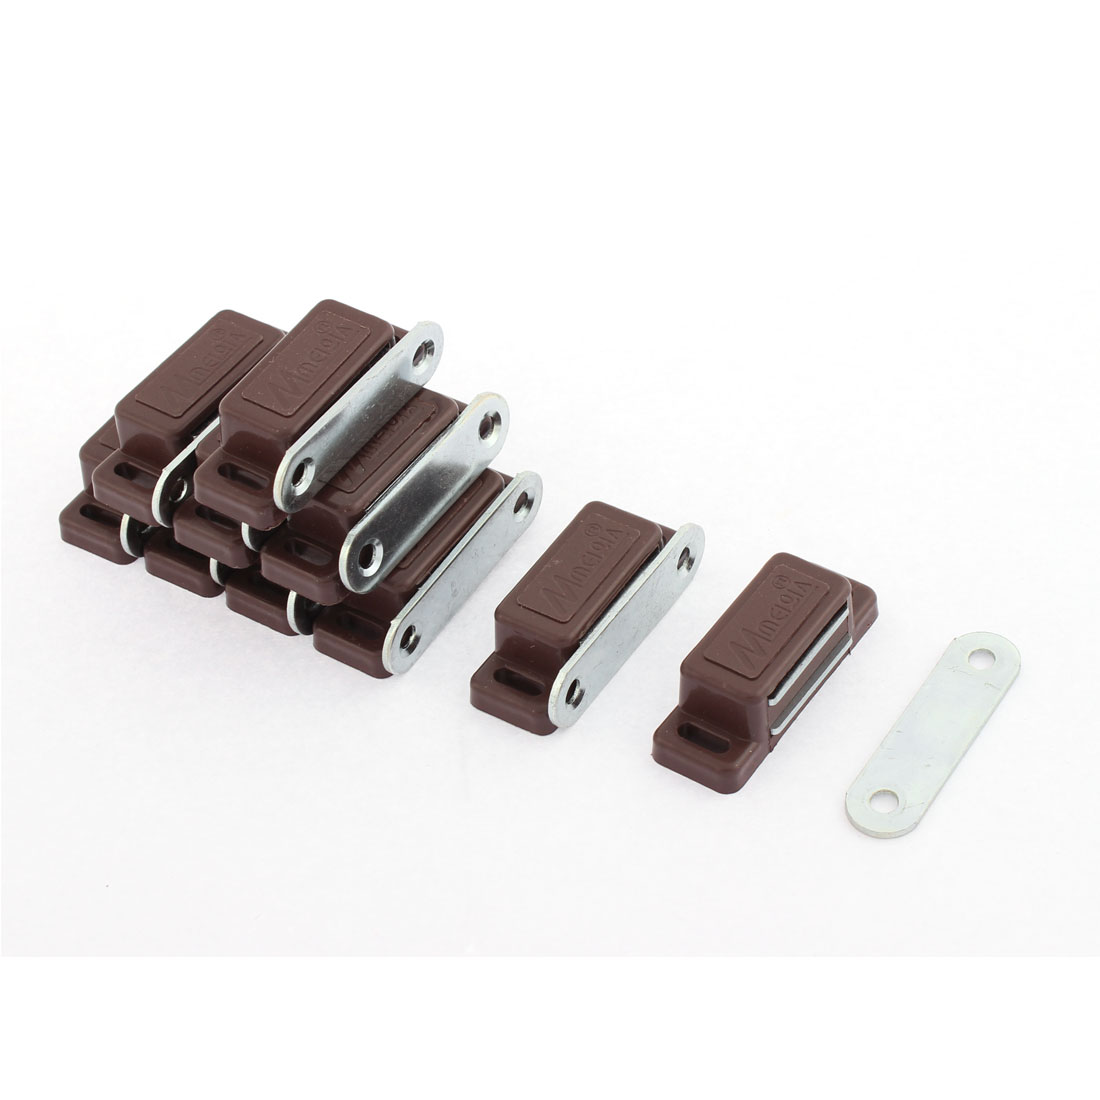 Cupboard Closet Door Magnetic Catch Latch 46mm x 17mm Dark Brown 10pcs